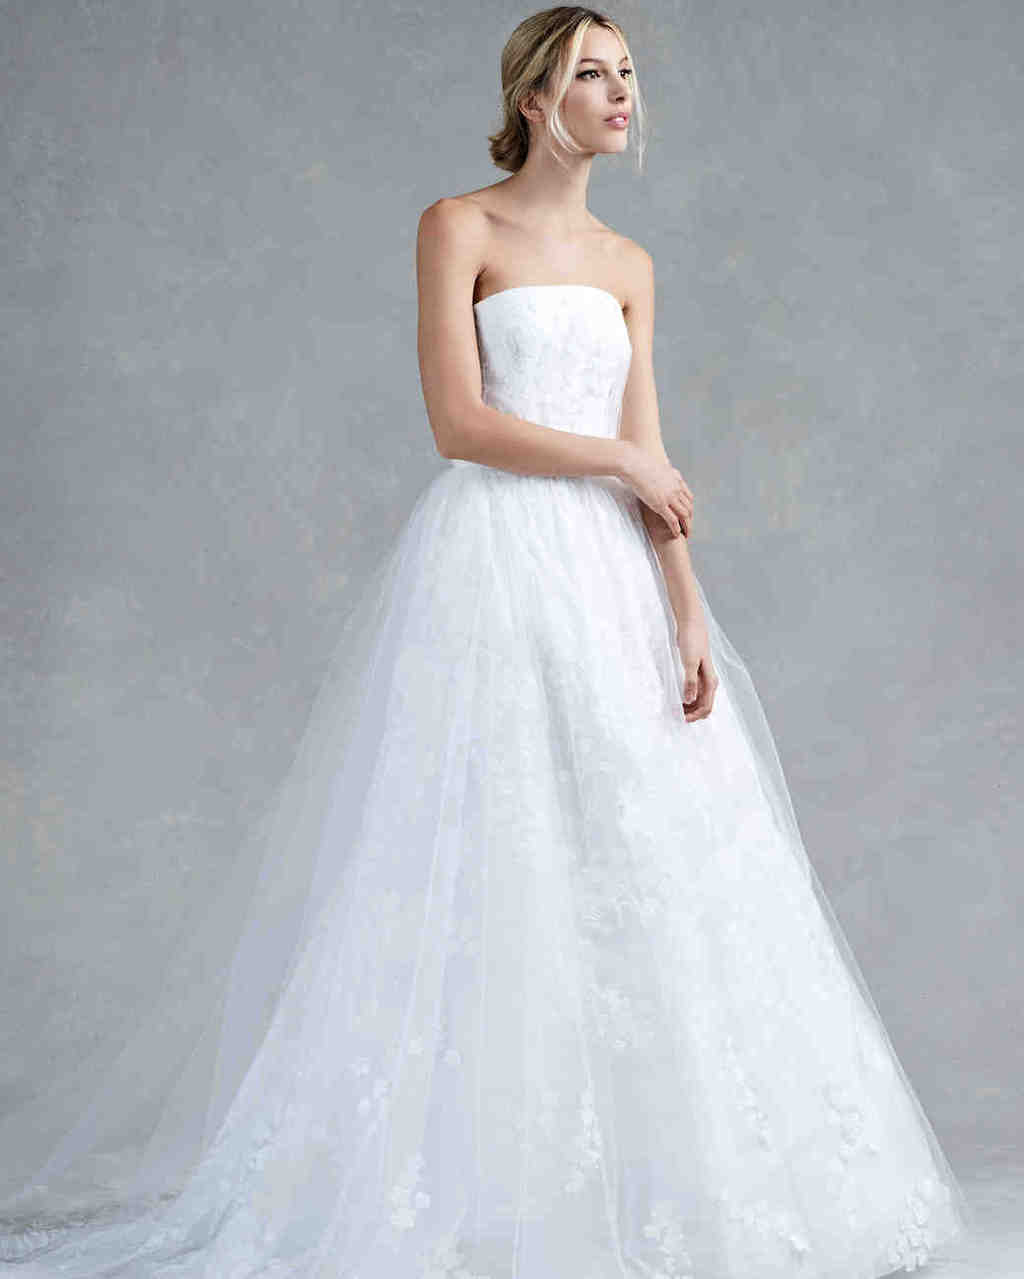 oscar-de-la-renta-wedding-dress-fall-2017_010_vert